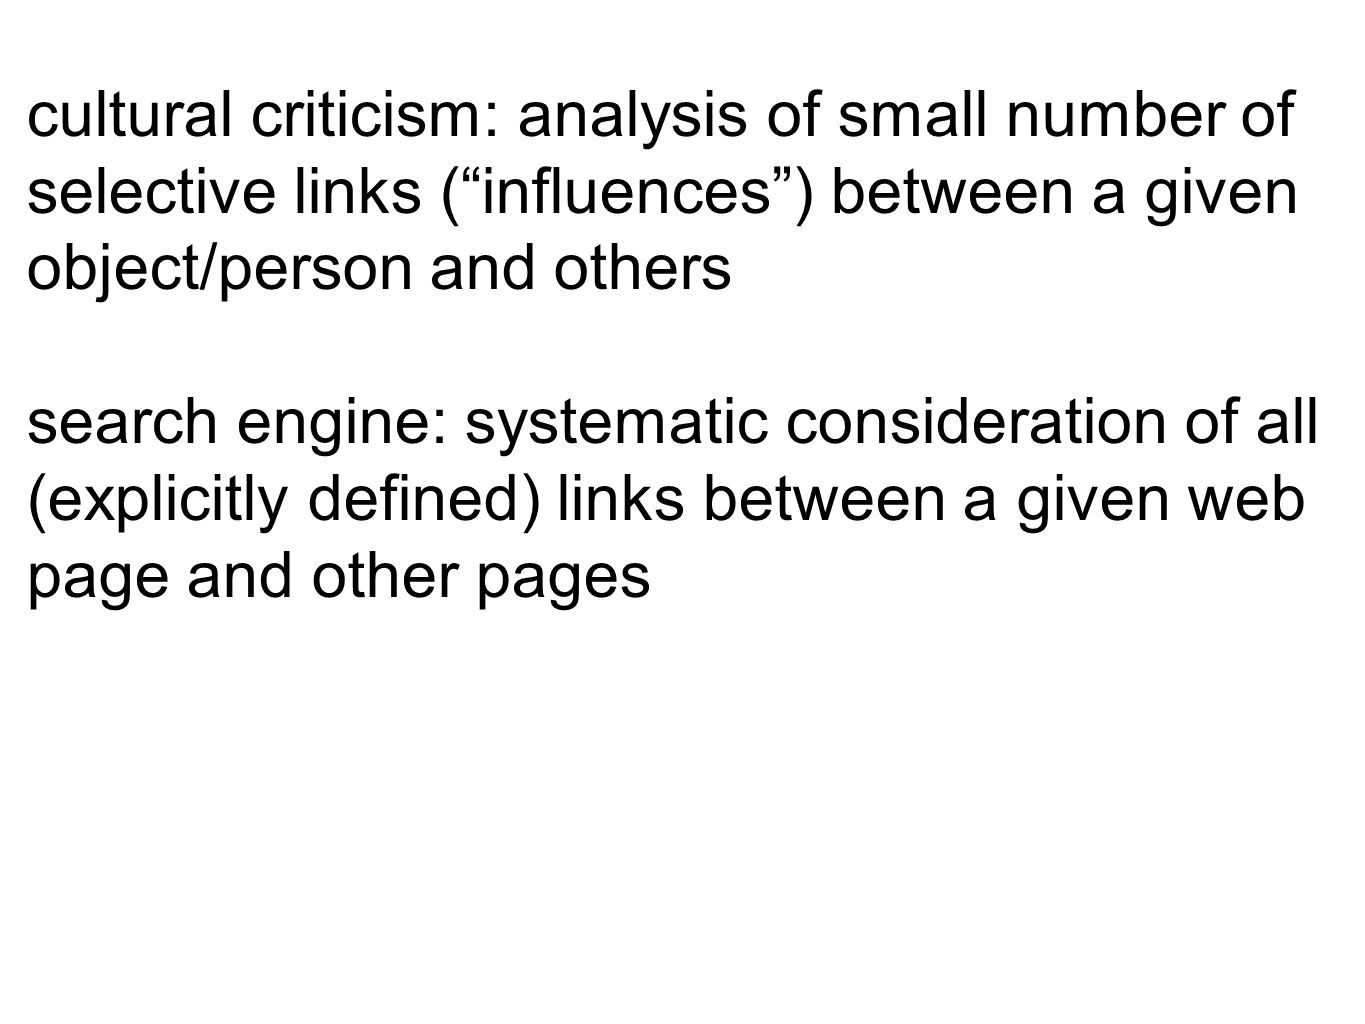 5| links cultural criticism: analysis of small number of selective links (influences) between a given object/person and others search engine: systematic consideration of all (explicitly defined) links between a given web page and other pages